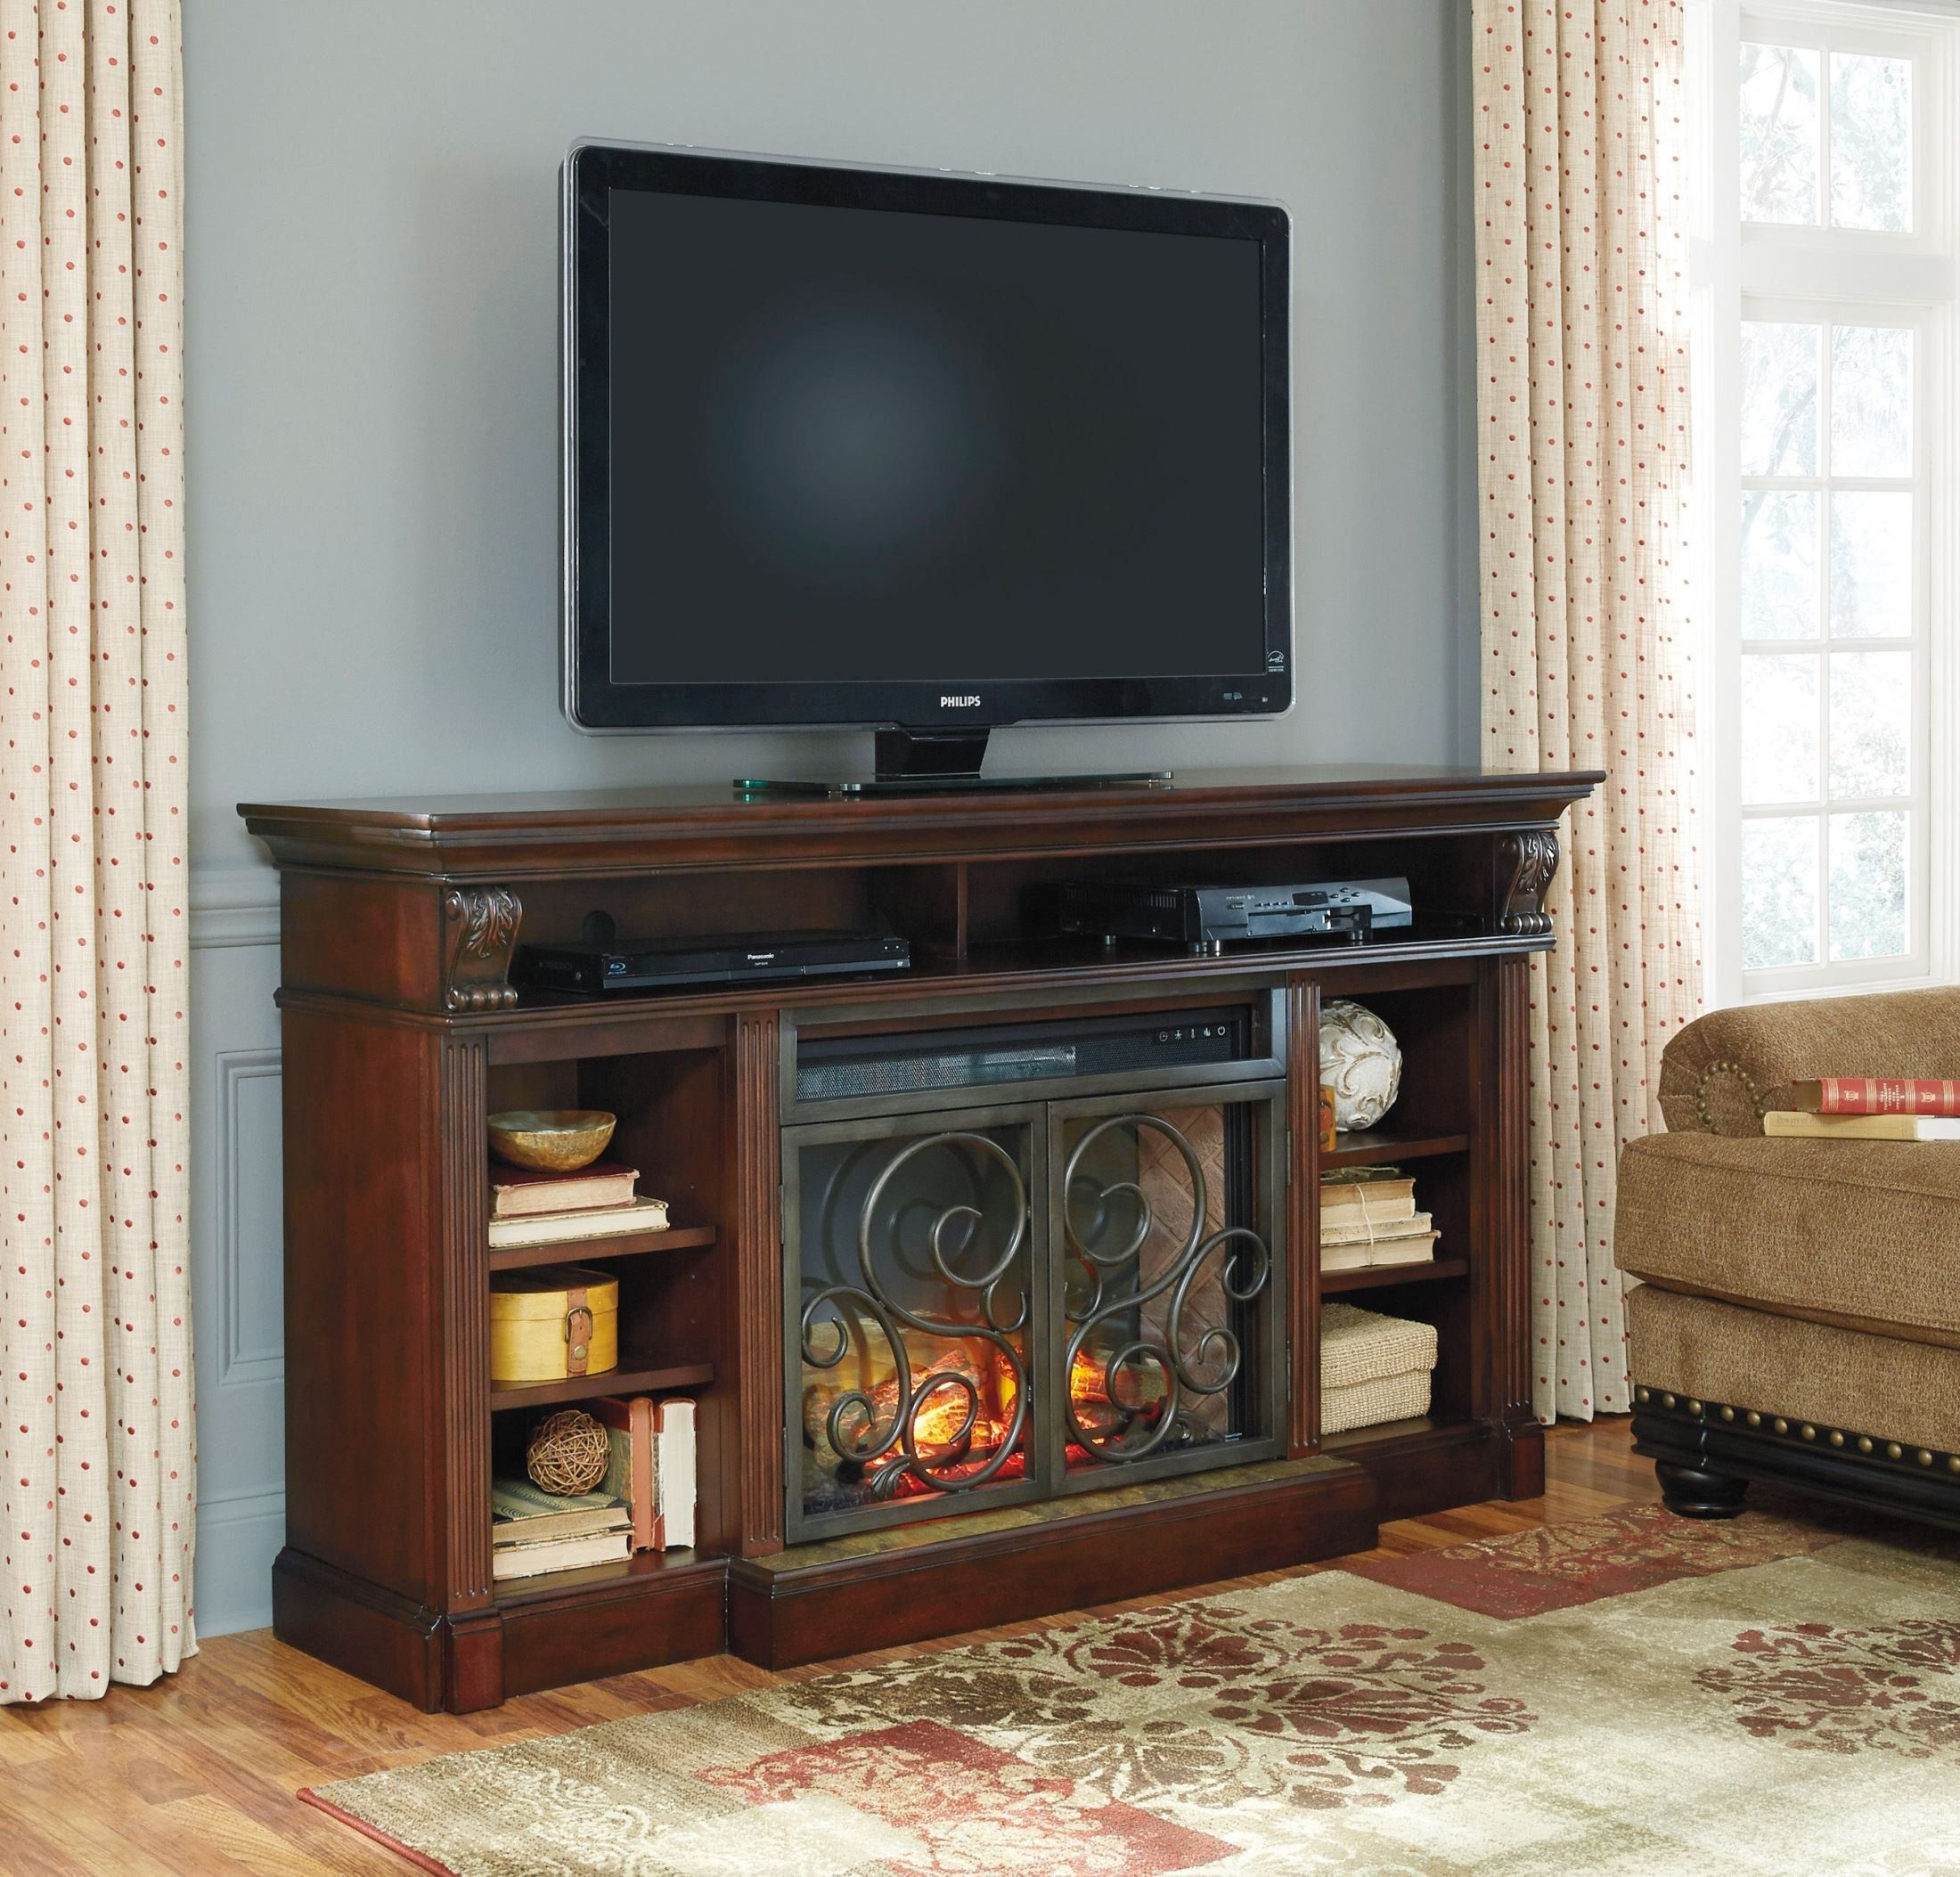 Ashley Furniture Tv Stand with Fireplace Best Of ashley Furniture attic Fireplaces